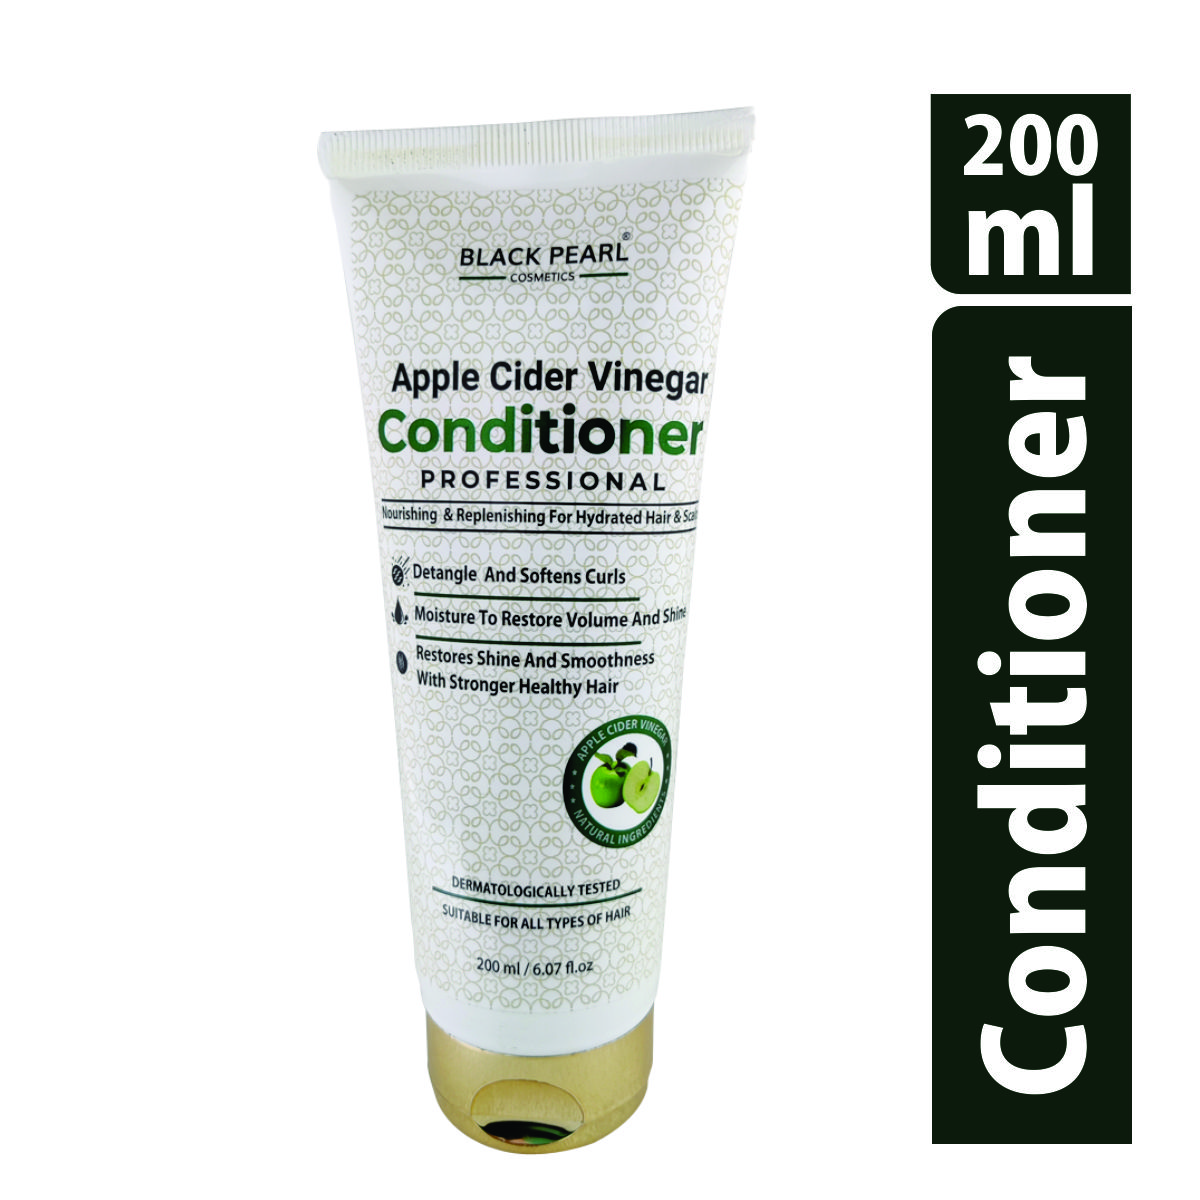 Black Pearl Apple Cider Vinegar Conditioner